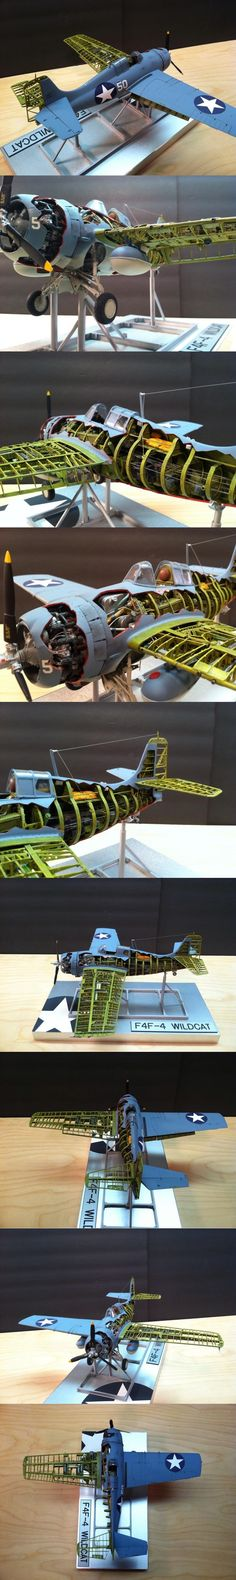 Wow really nice, great build.I sell some kits you can build yourself #airplanemodels